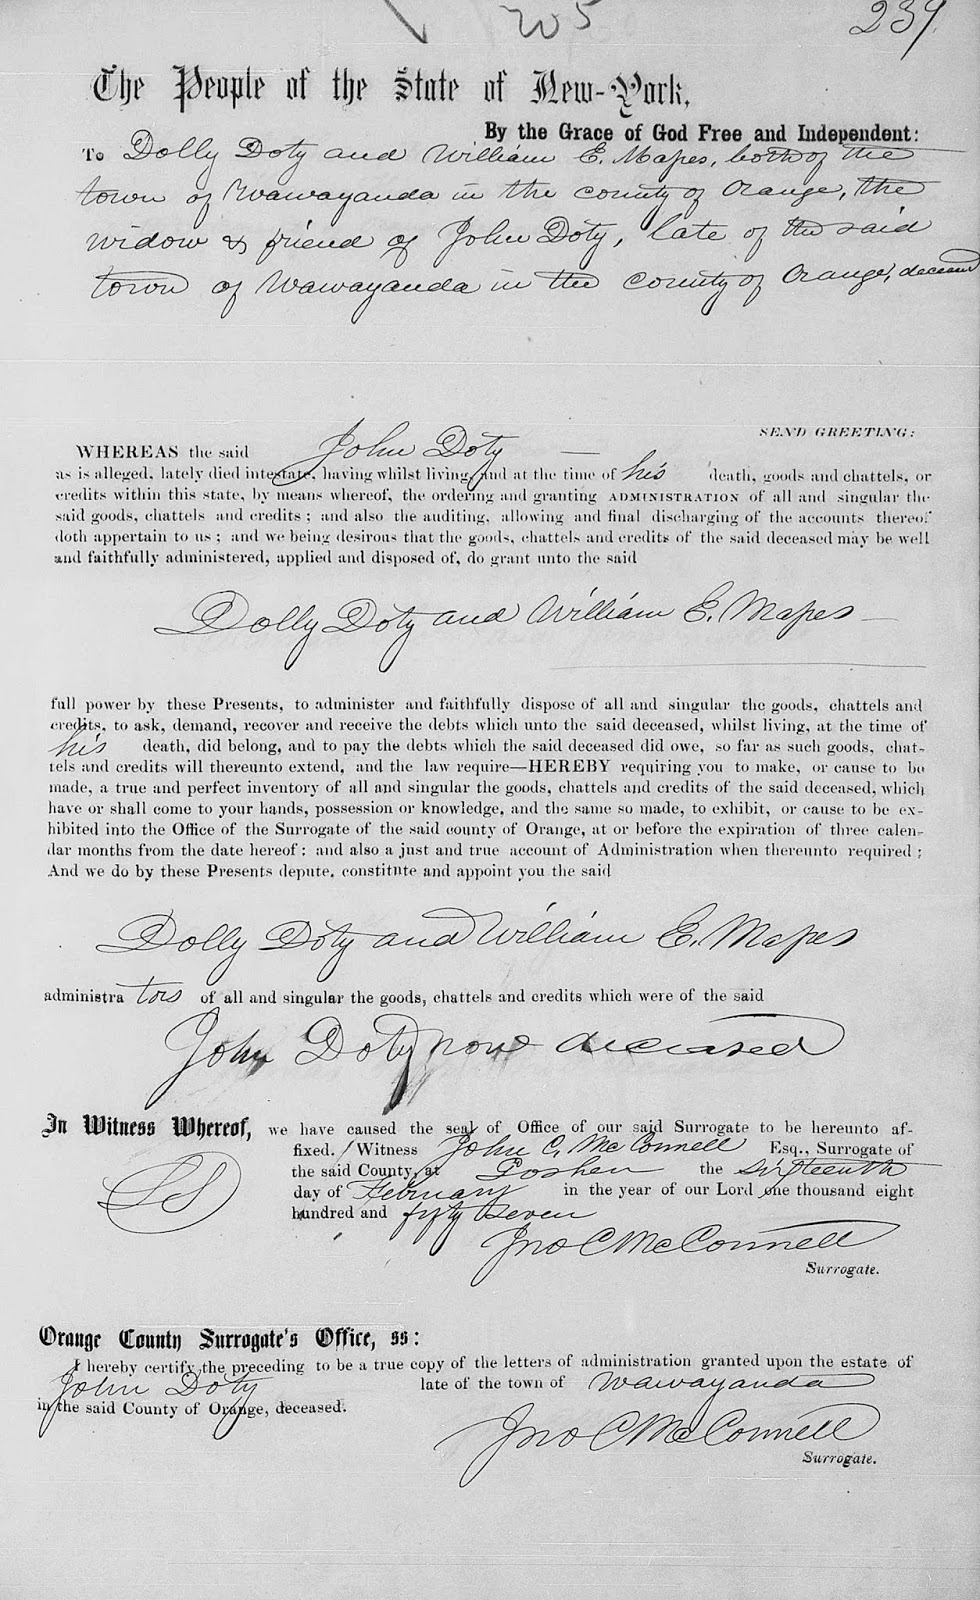 Orange County, NY Letter of Administration of John Doty's estate